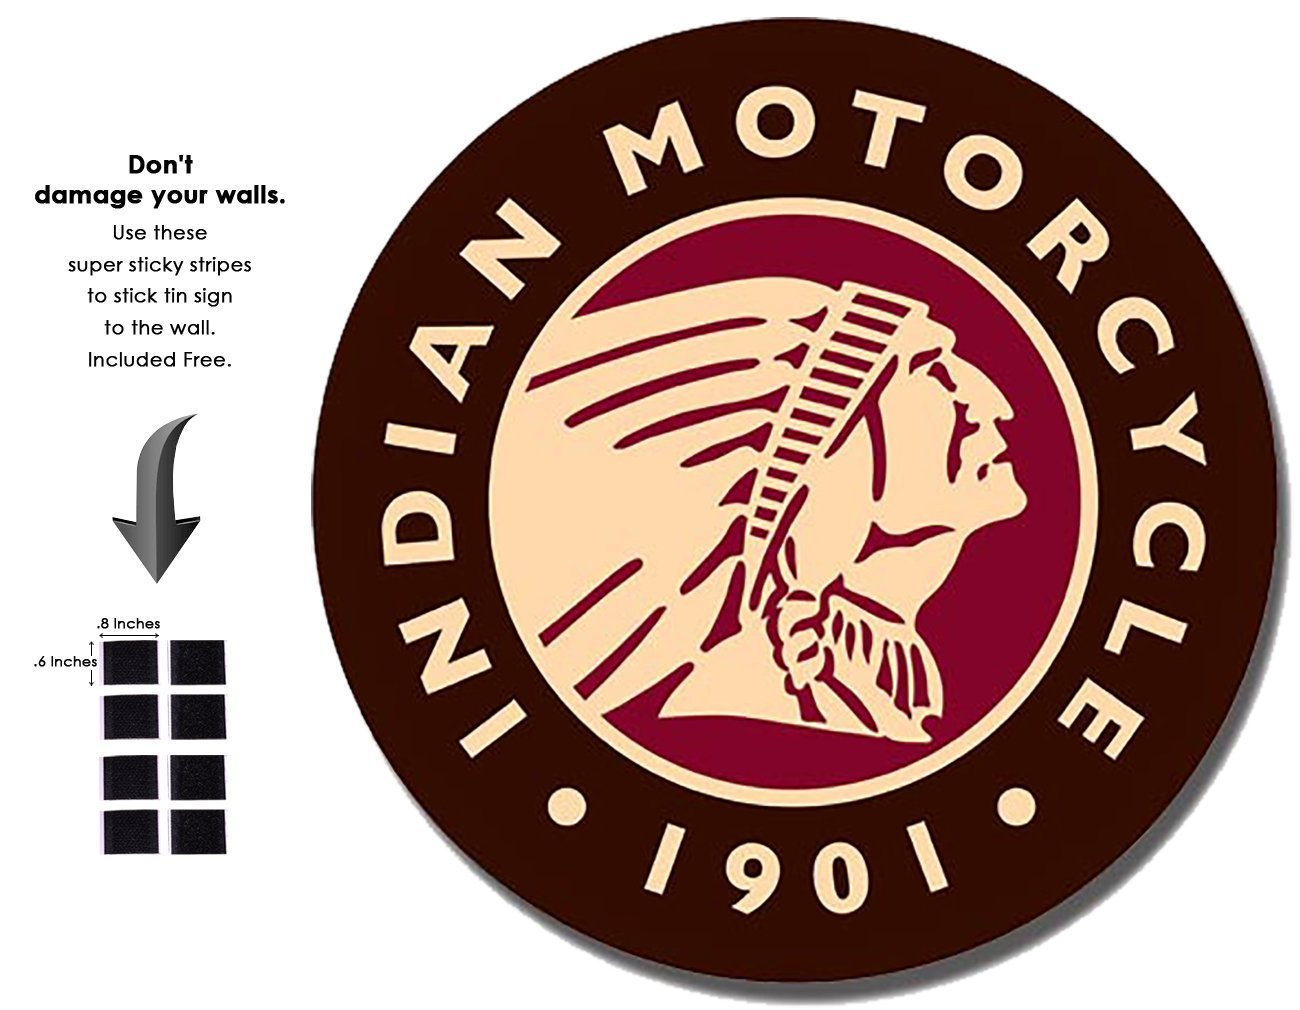 Shop72 - Indian Logo Round - Indian Motorcycle 1901 Tin Sign Bikes Tin Sign Retro Vintage Distrssed - With Sticky Stripes No Damage to Walls